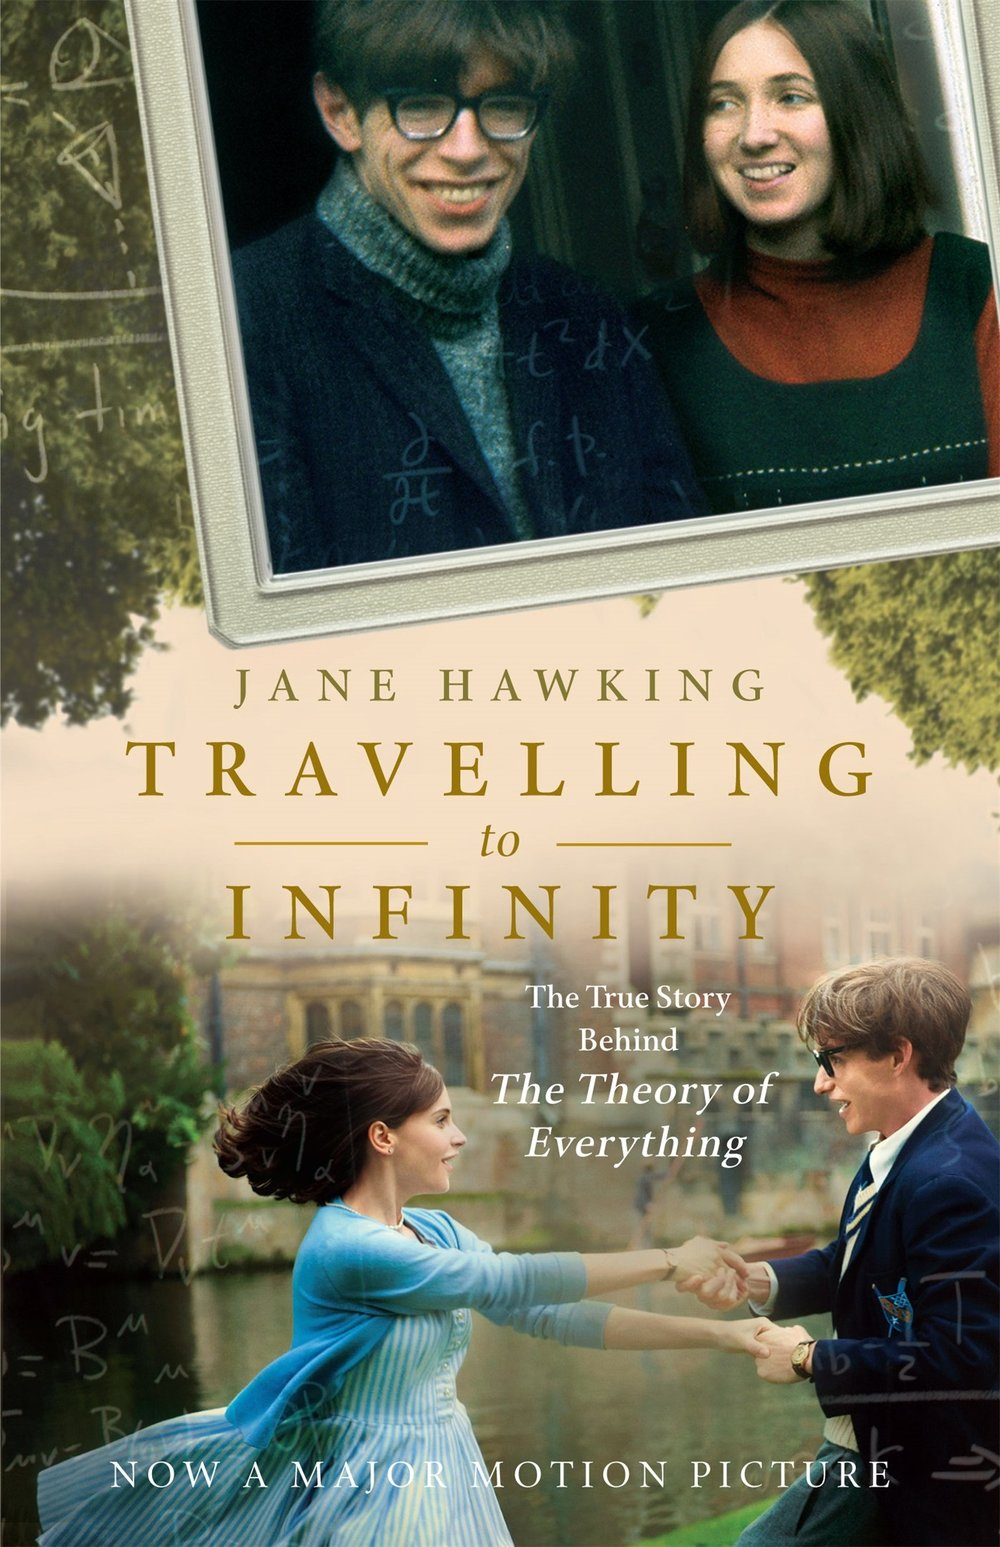 Travelling to Infinity  by Jane Hawking